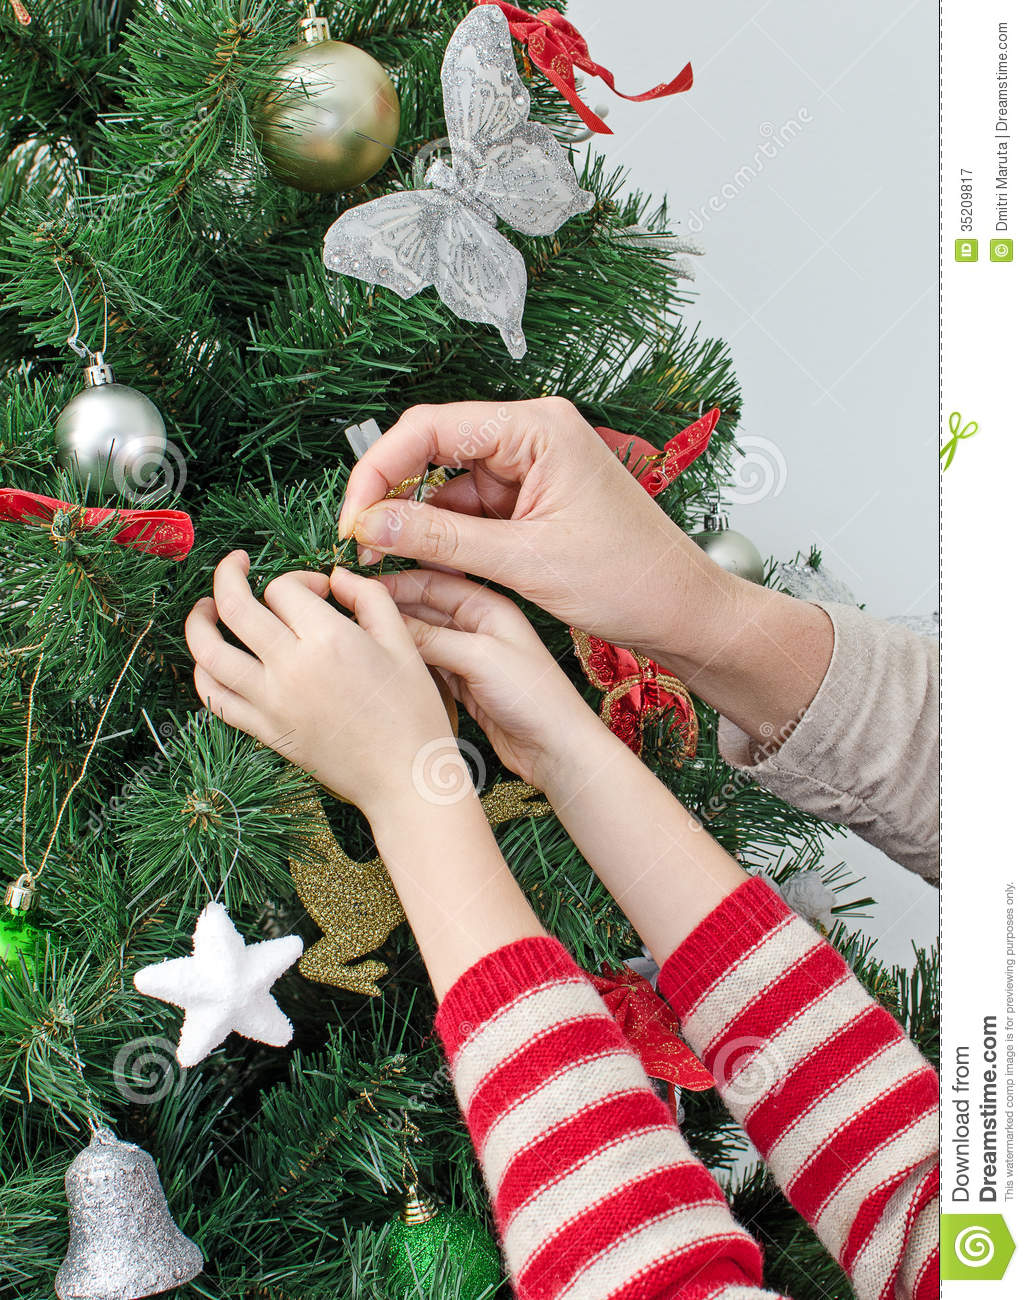 Hands Decorating The Christmas Tree Royalty Free Stock Photography ...